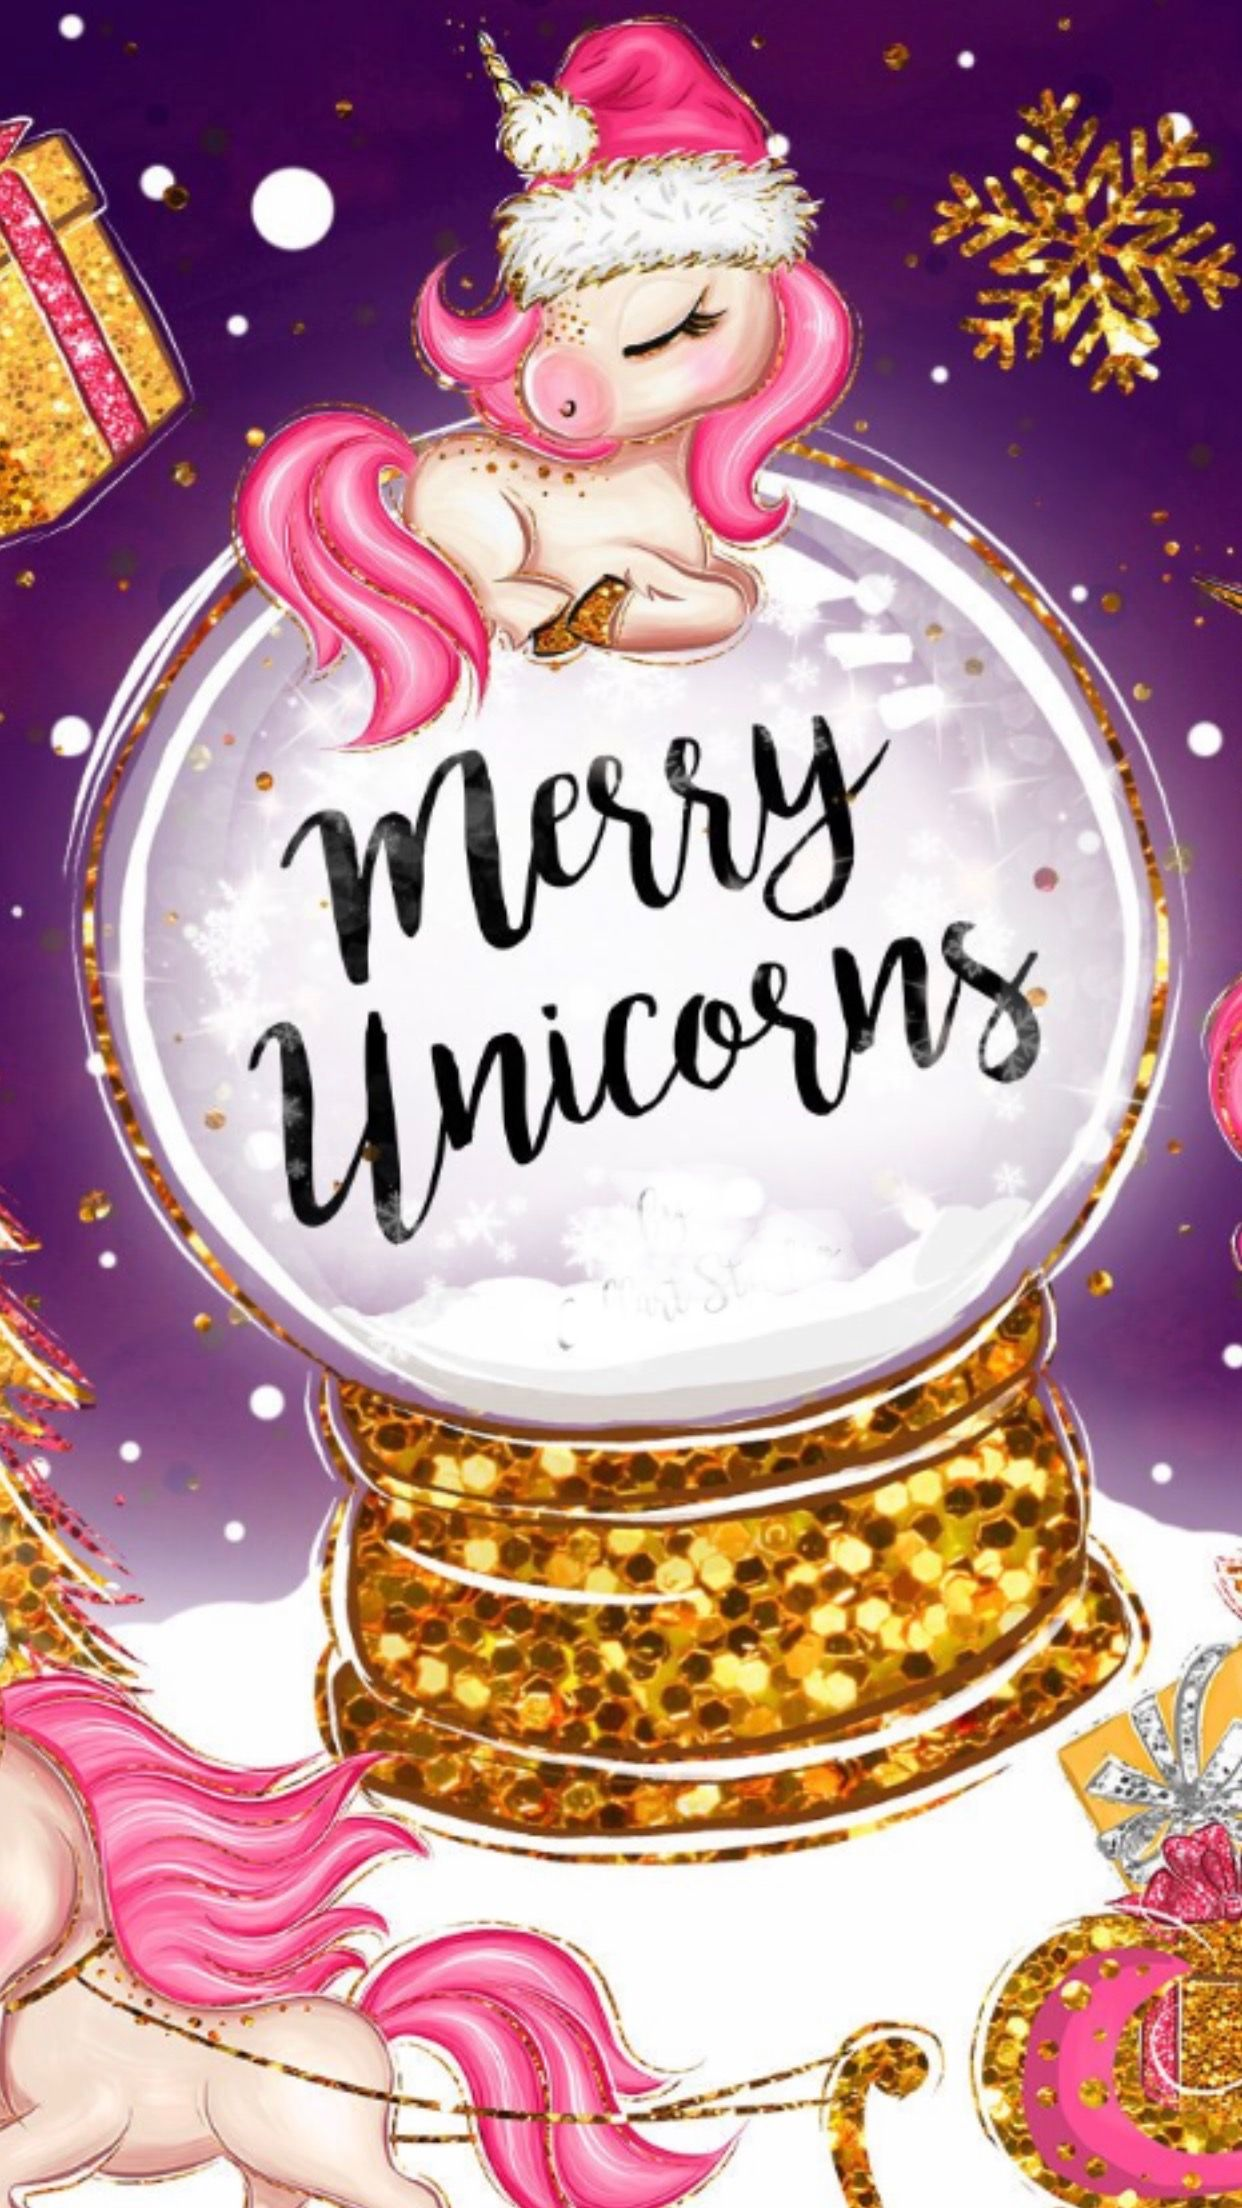 Pin By Monika Elrod On For Z Christmas Unicorn Unicorn Wallpaper Cute Christmas Wallpaper